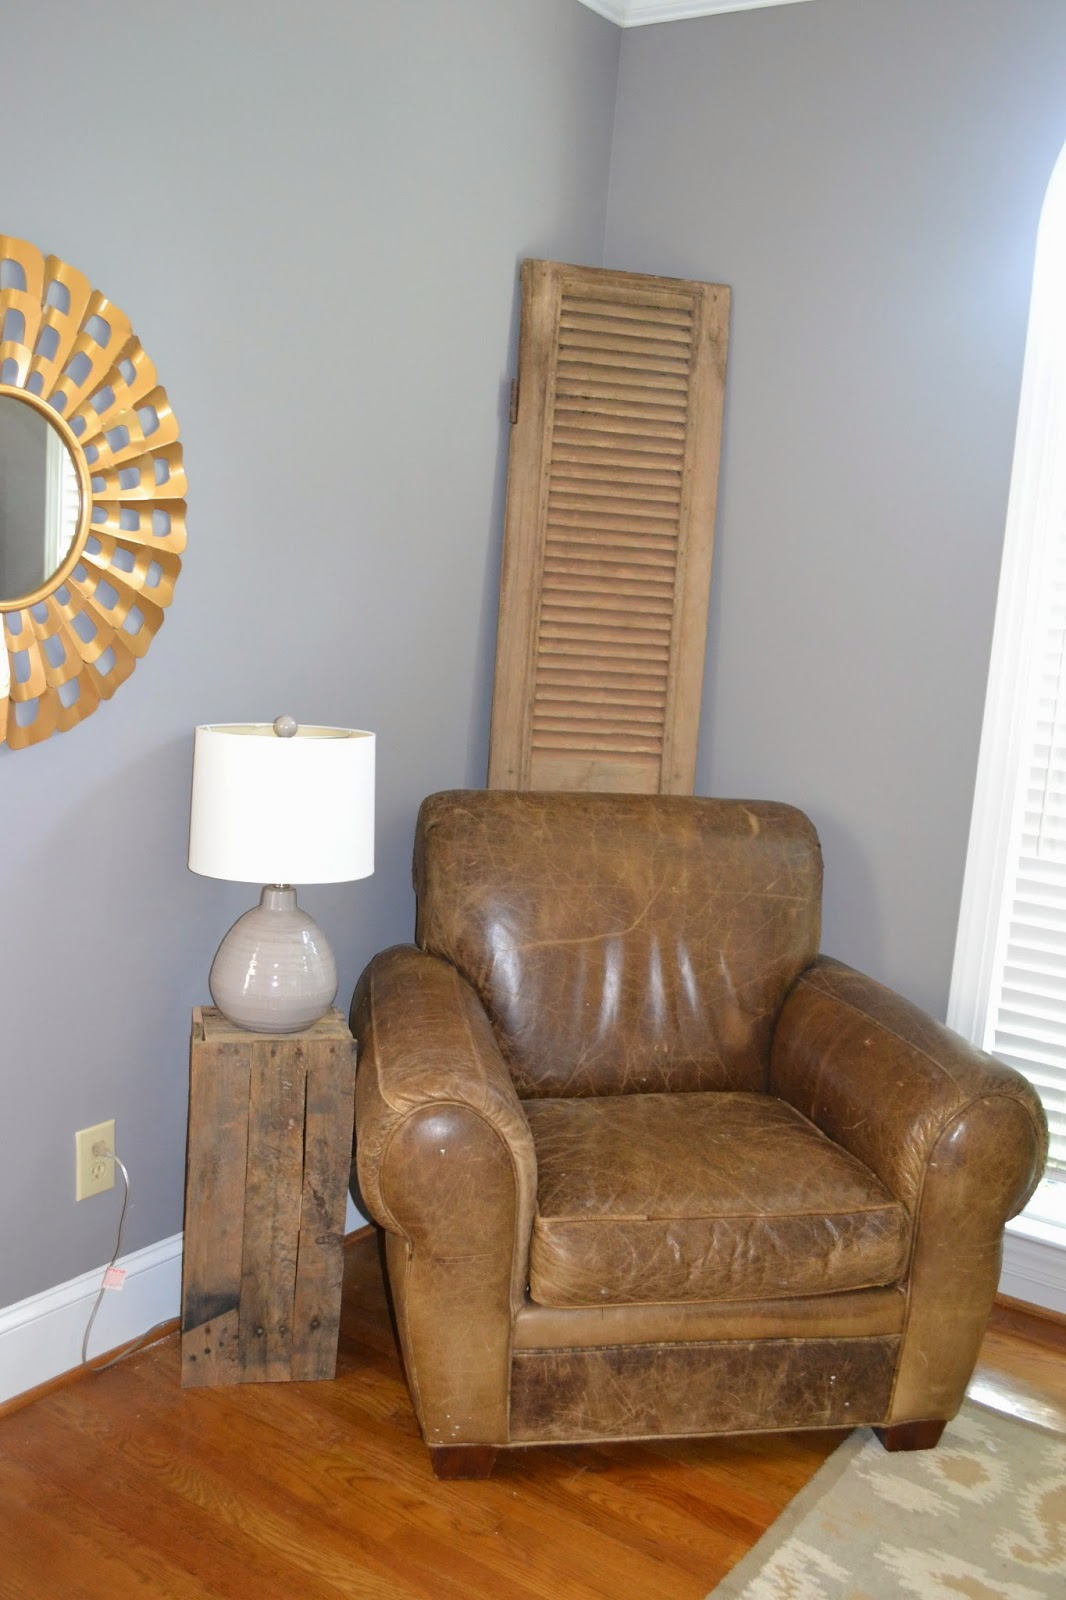 ryan leighton mae maggie home tour family room this is the couch we purchased from haverty s a month after we moved to charlotte i love that we all 3 can fit on it at what time miraculously it has not